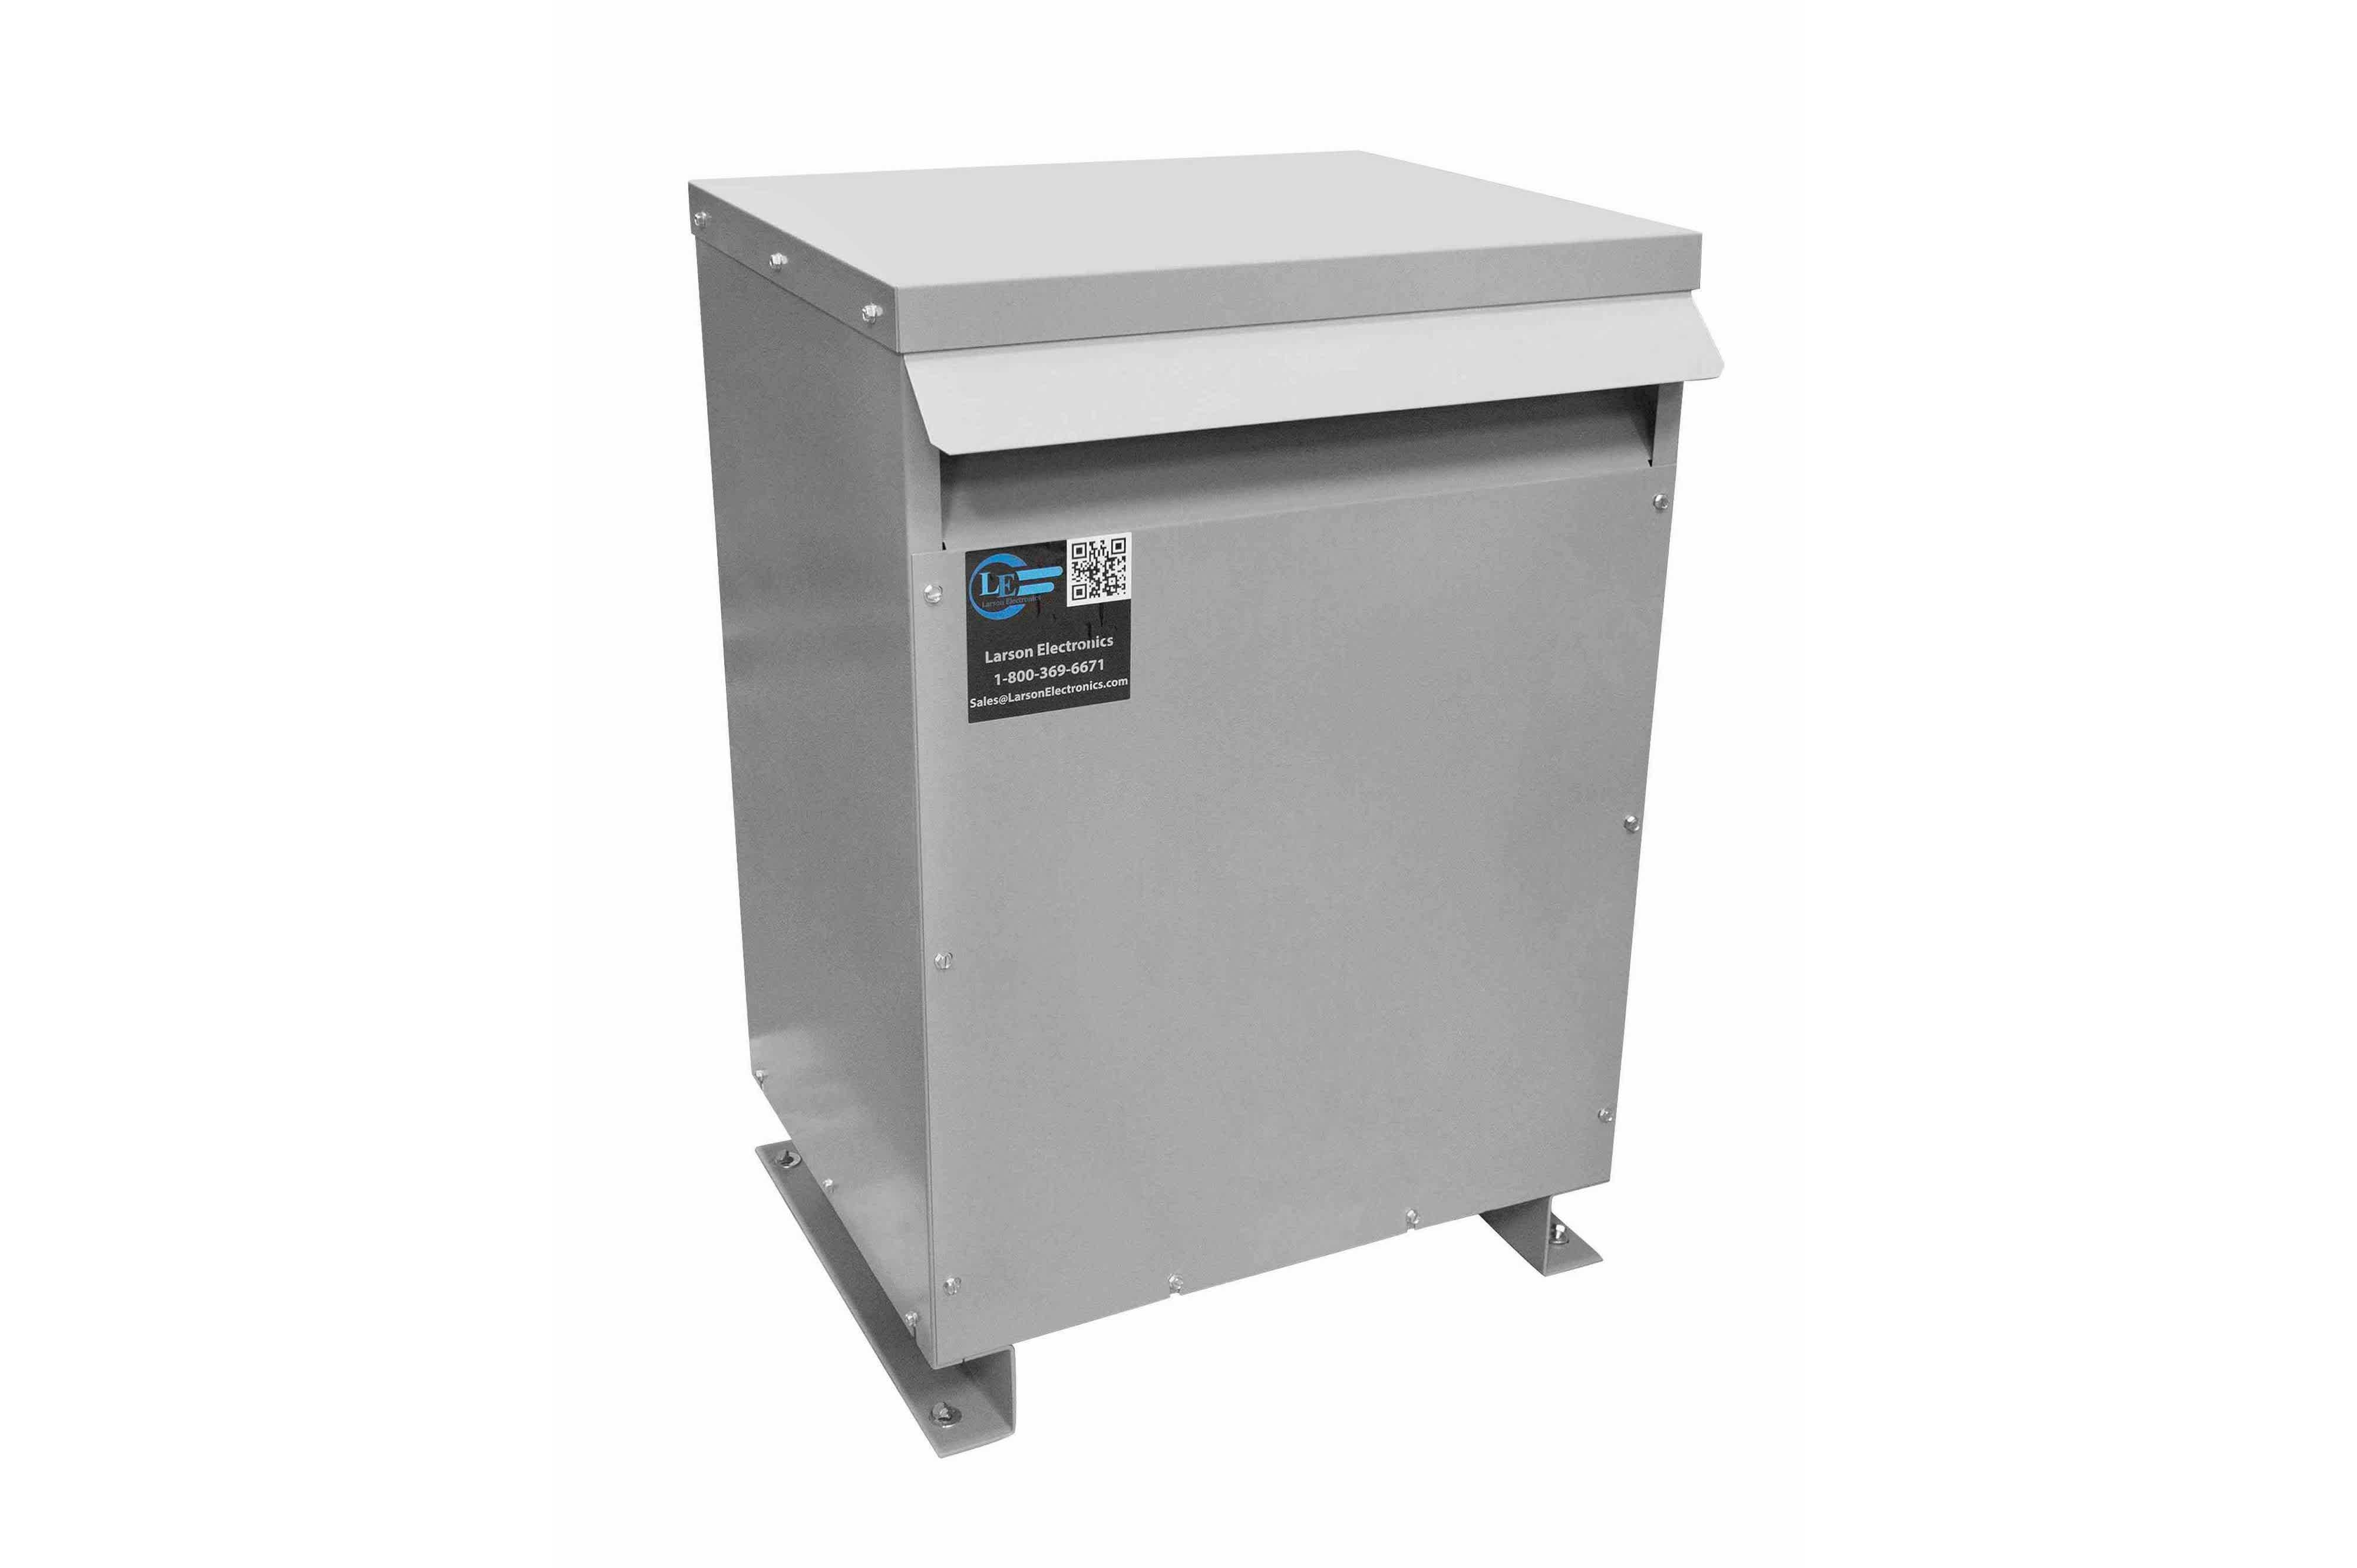 22.5 kVA 3PH Isolation Transformer, 600V Wye Primary, 380Y/220 Wye-N Secondary, N3R, Ventilated, 60 Hz